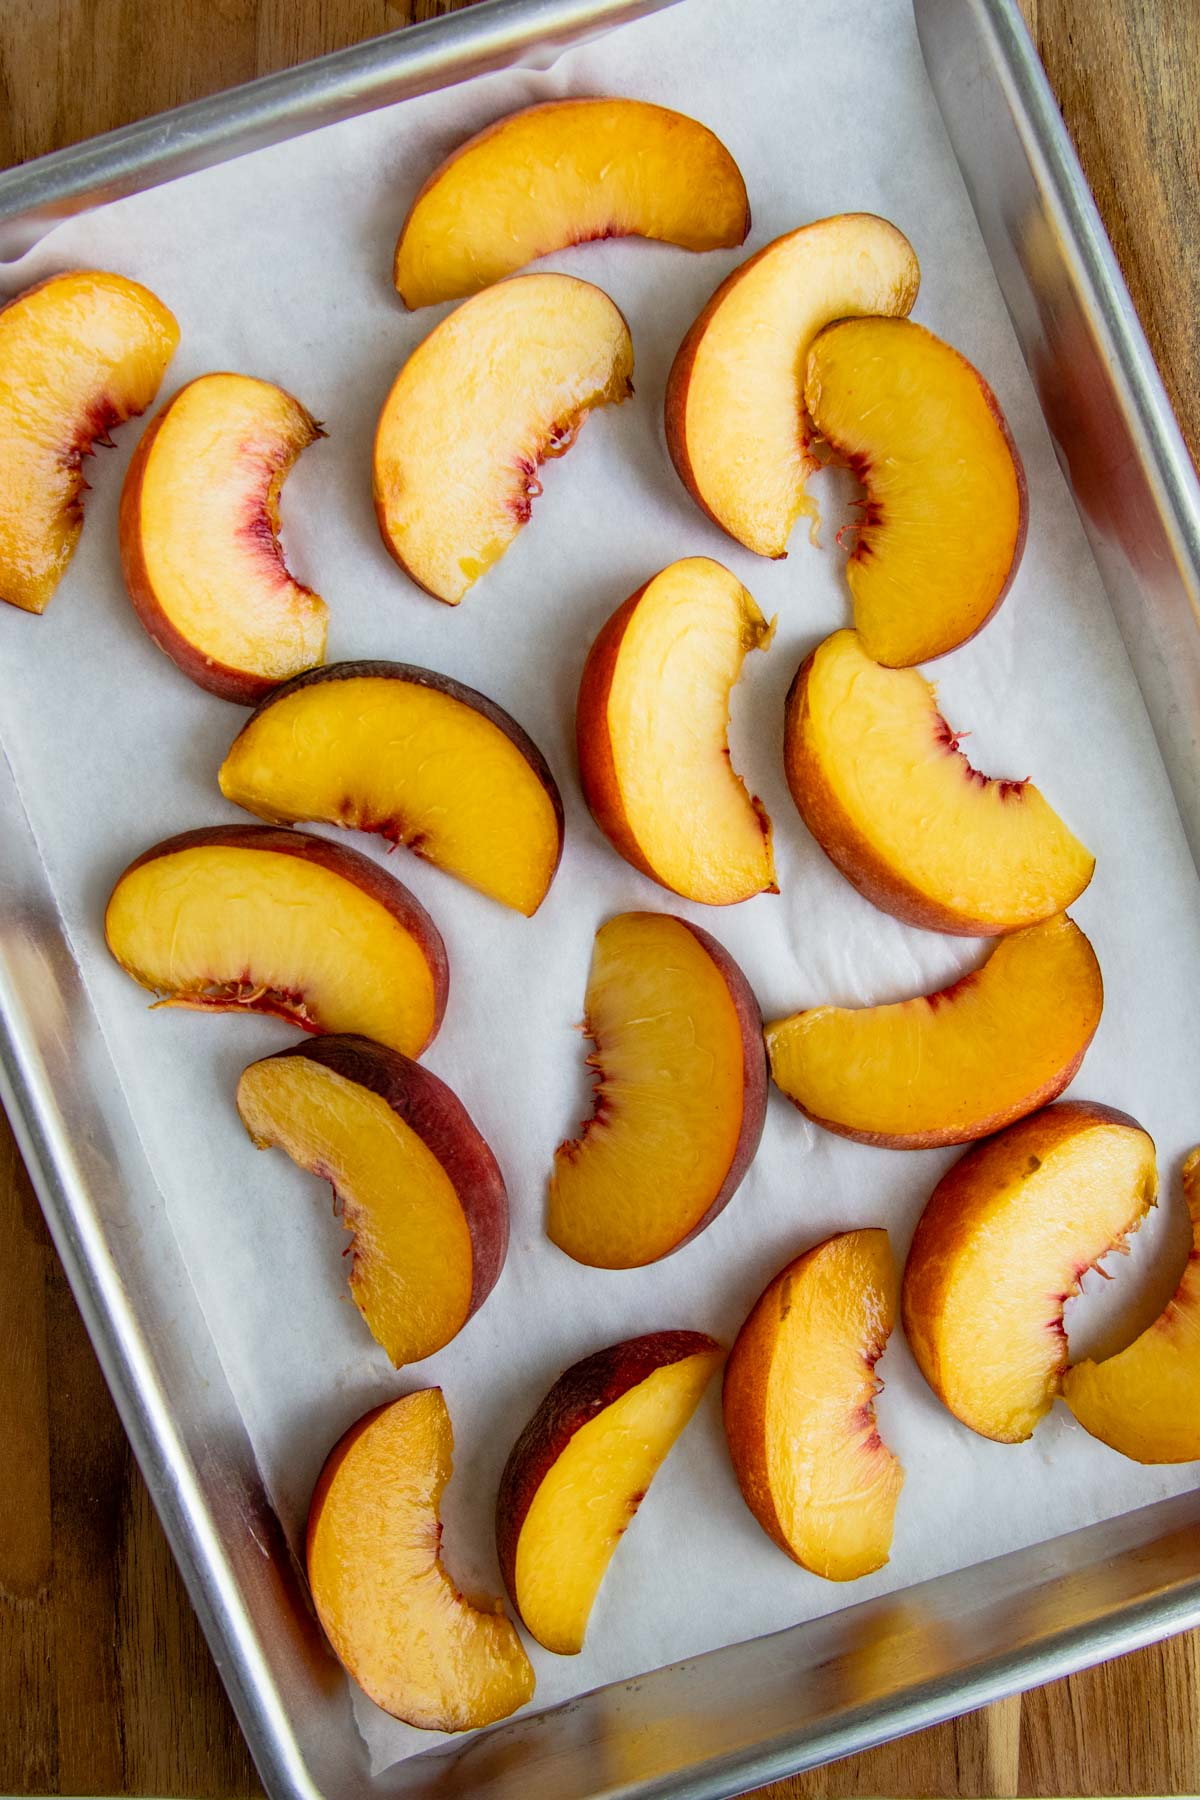 Cut peaches on a parchment lined baking sheet